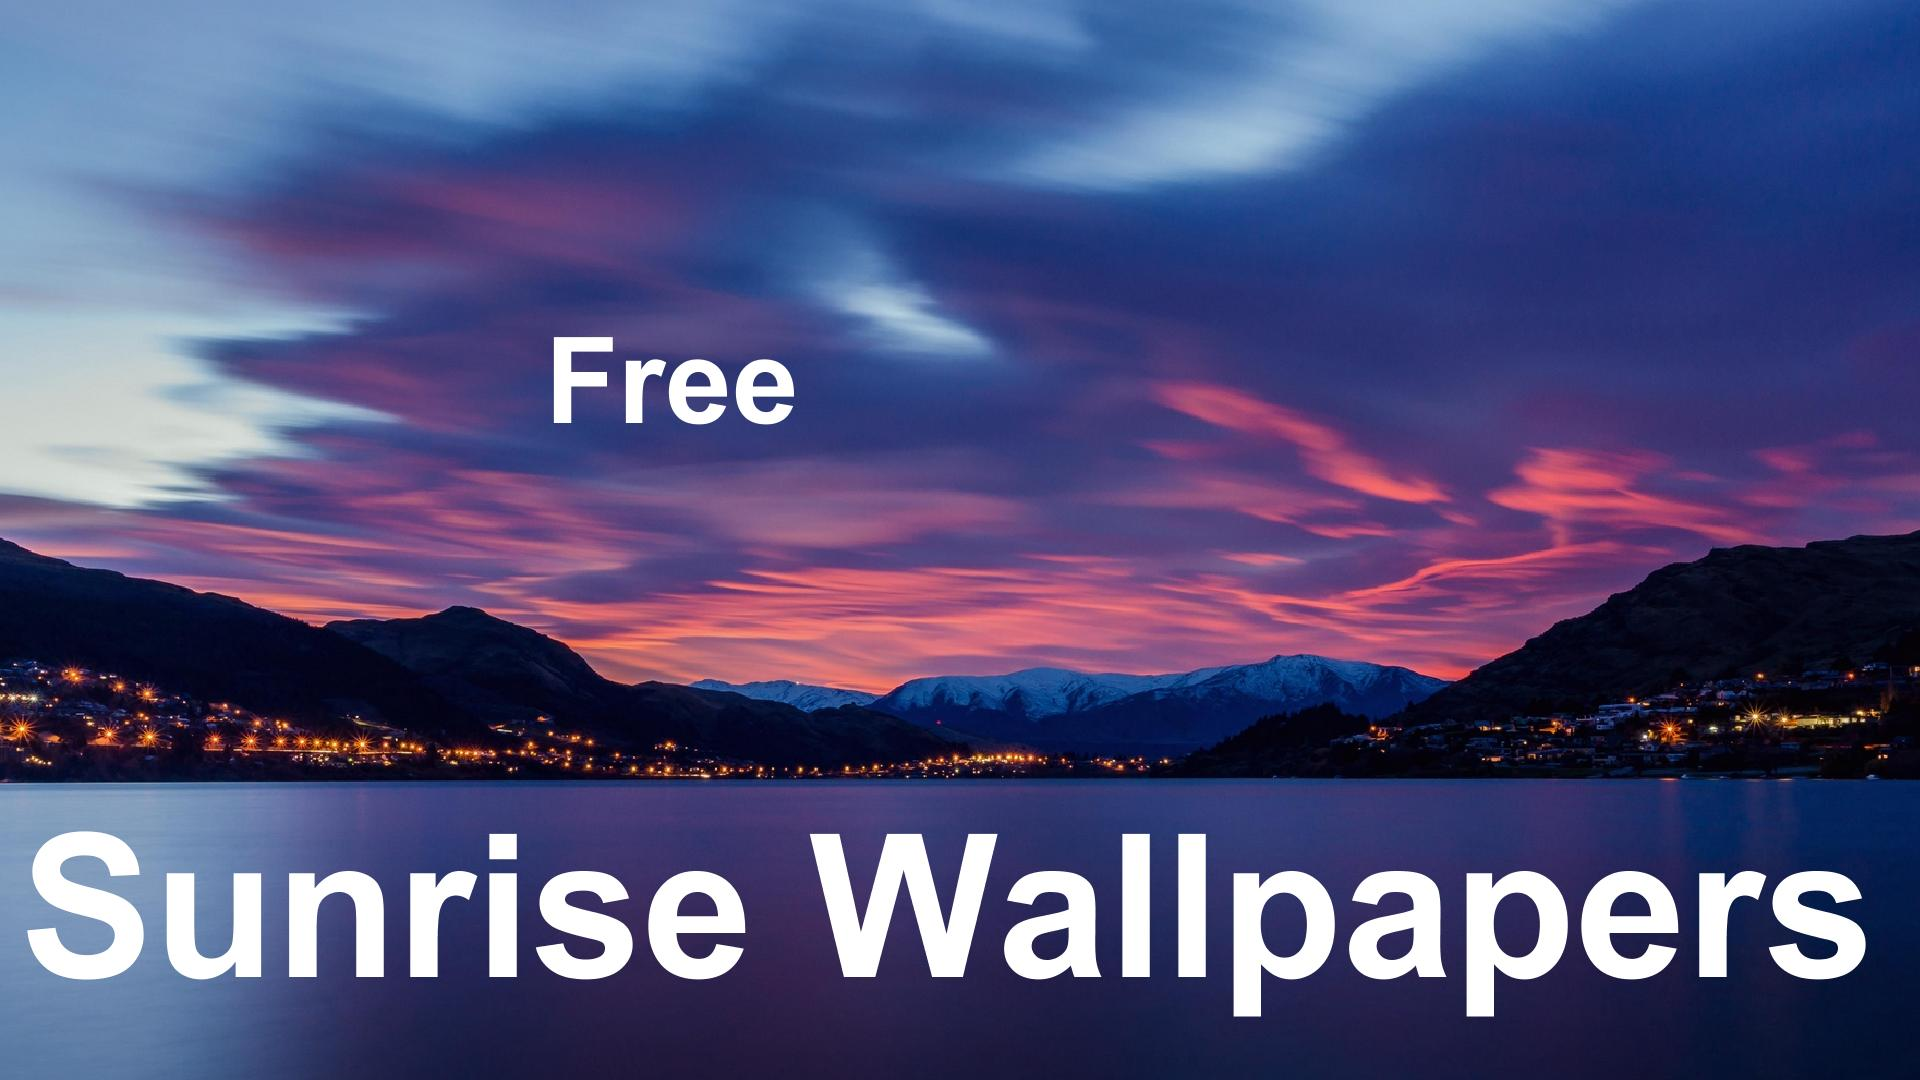 Sunrise Wallpapers And Background Editing For Android Apk Download